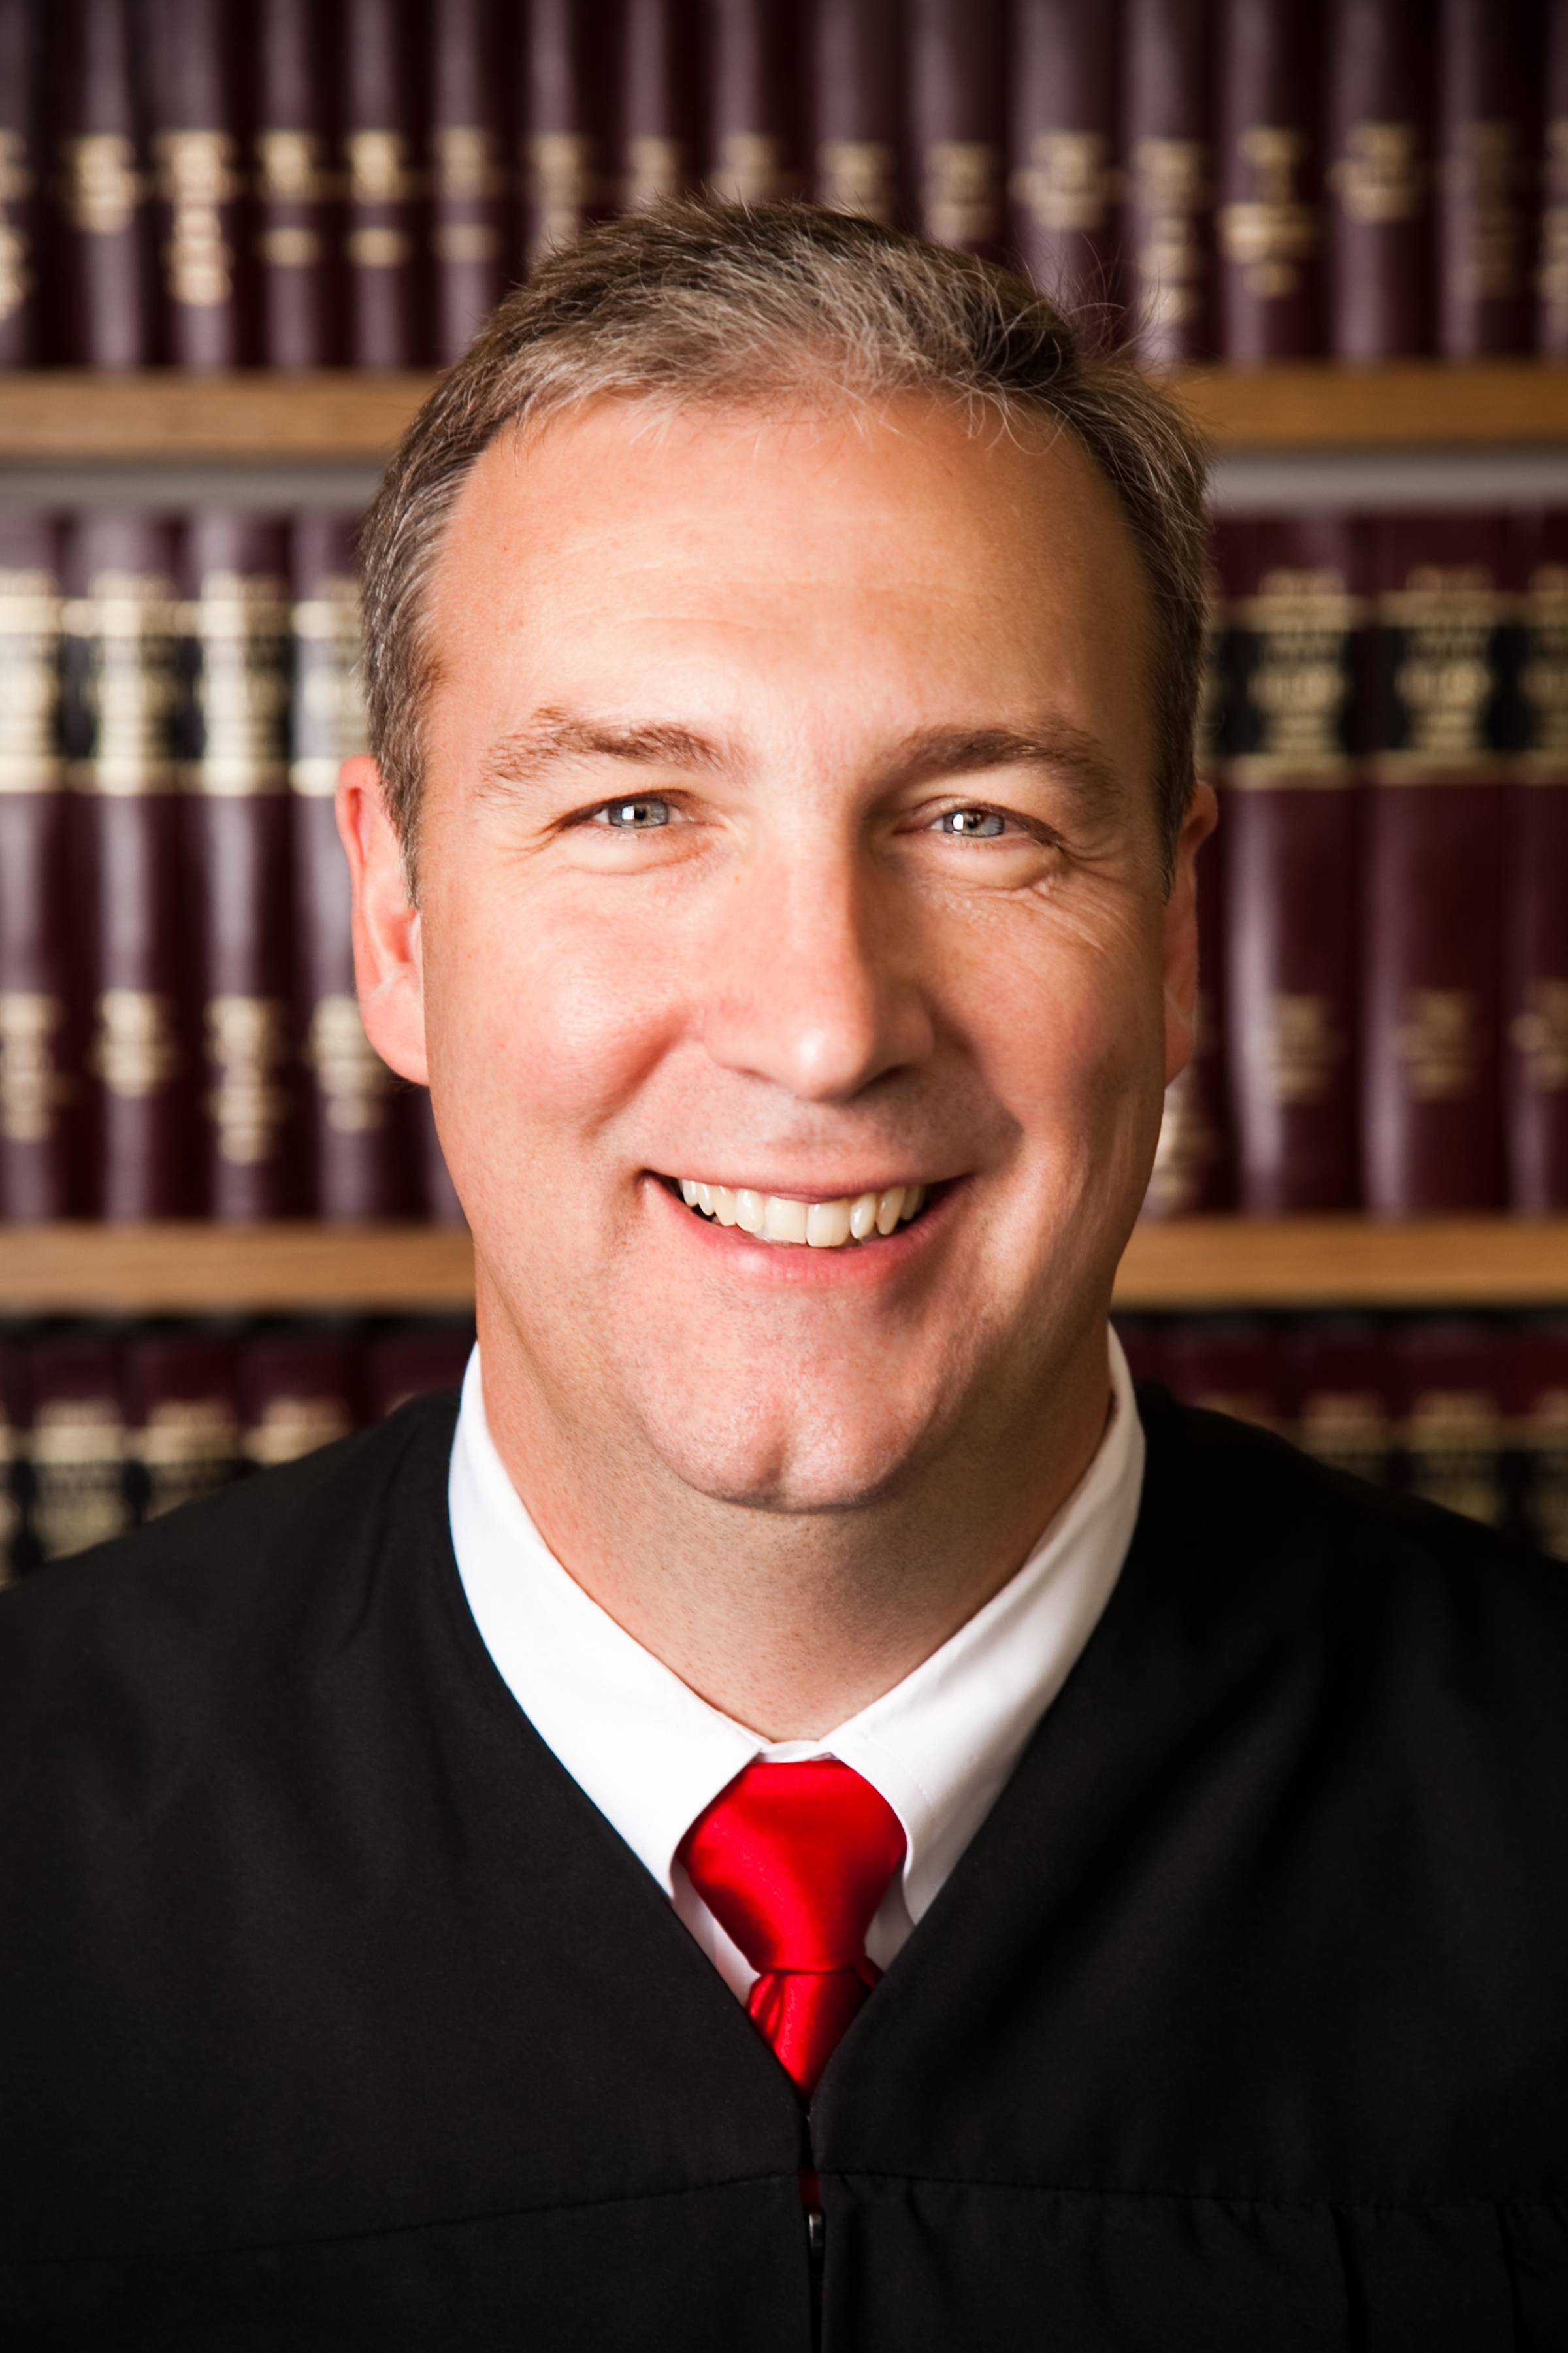 Patrick Sherlock, running for Appellate Court 1st District (Gallagher)